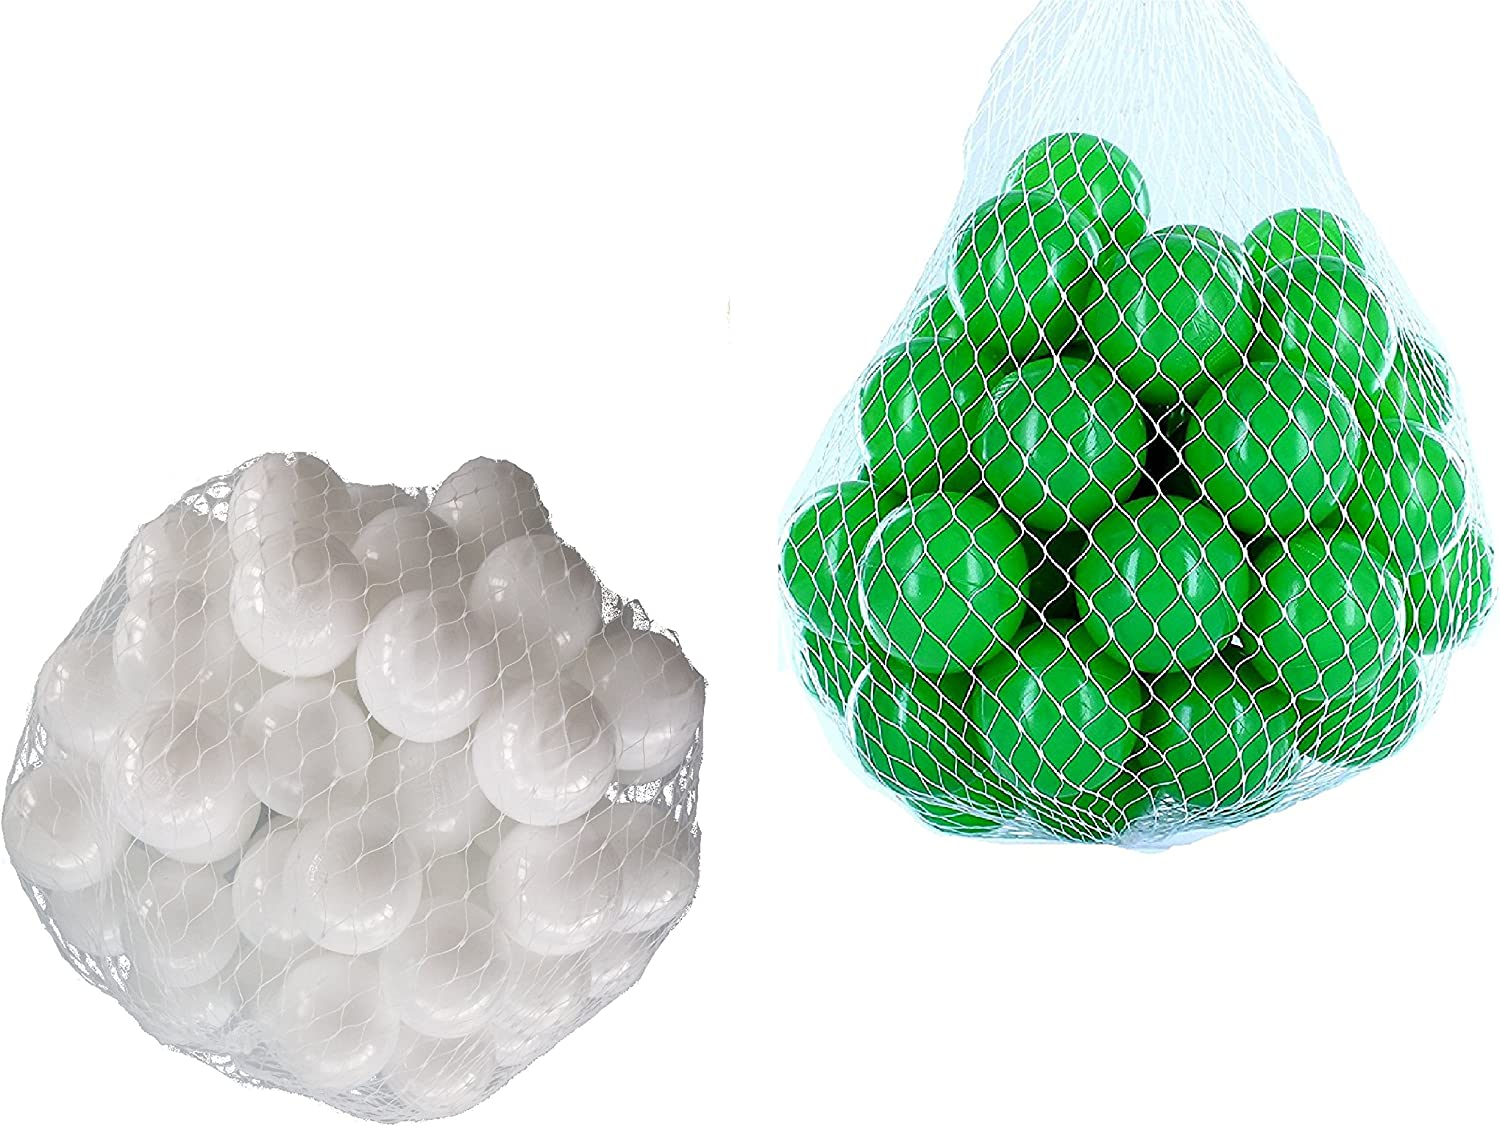 Balls For Ball Pool Mix Set with Green and White